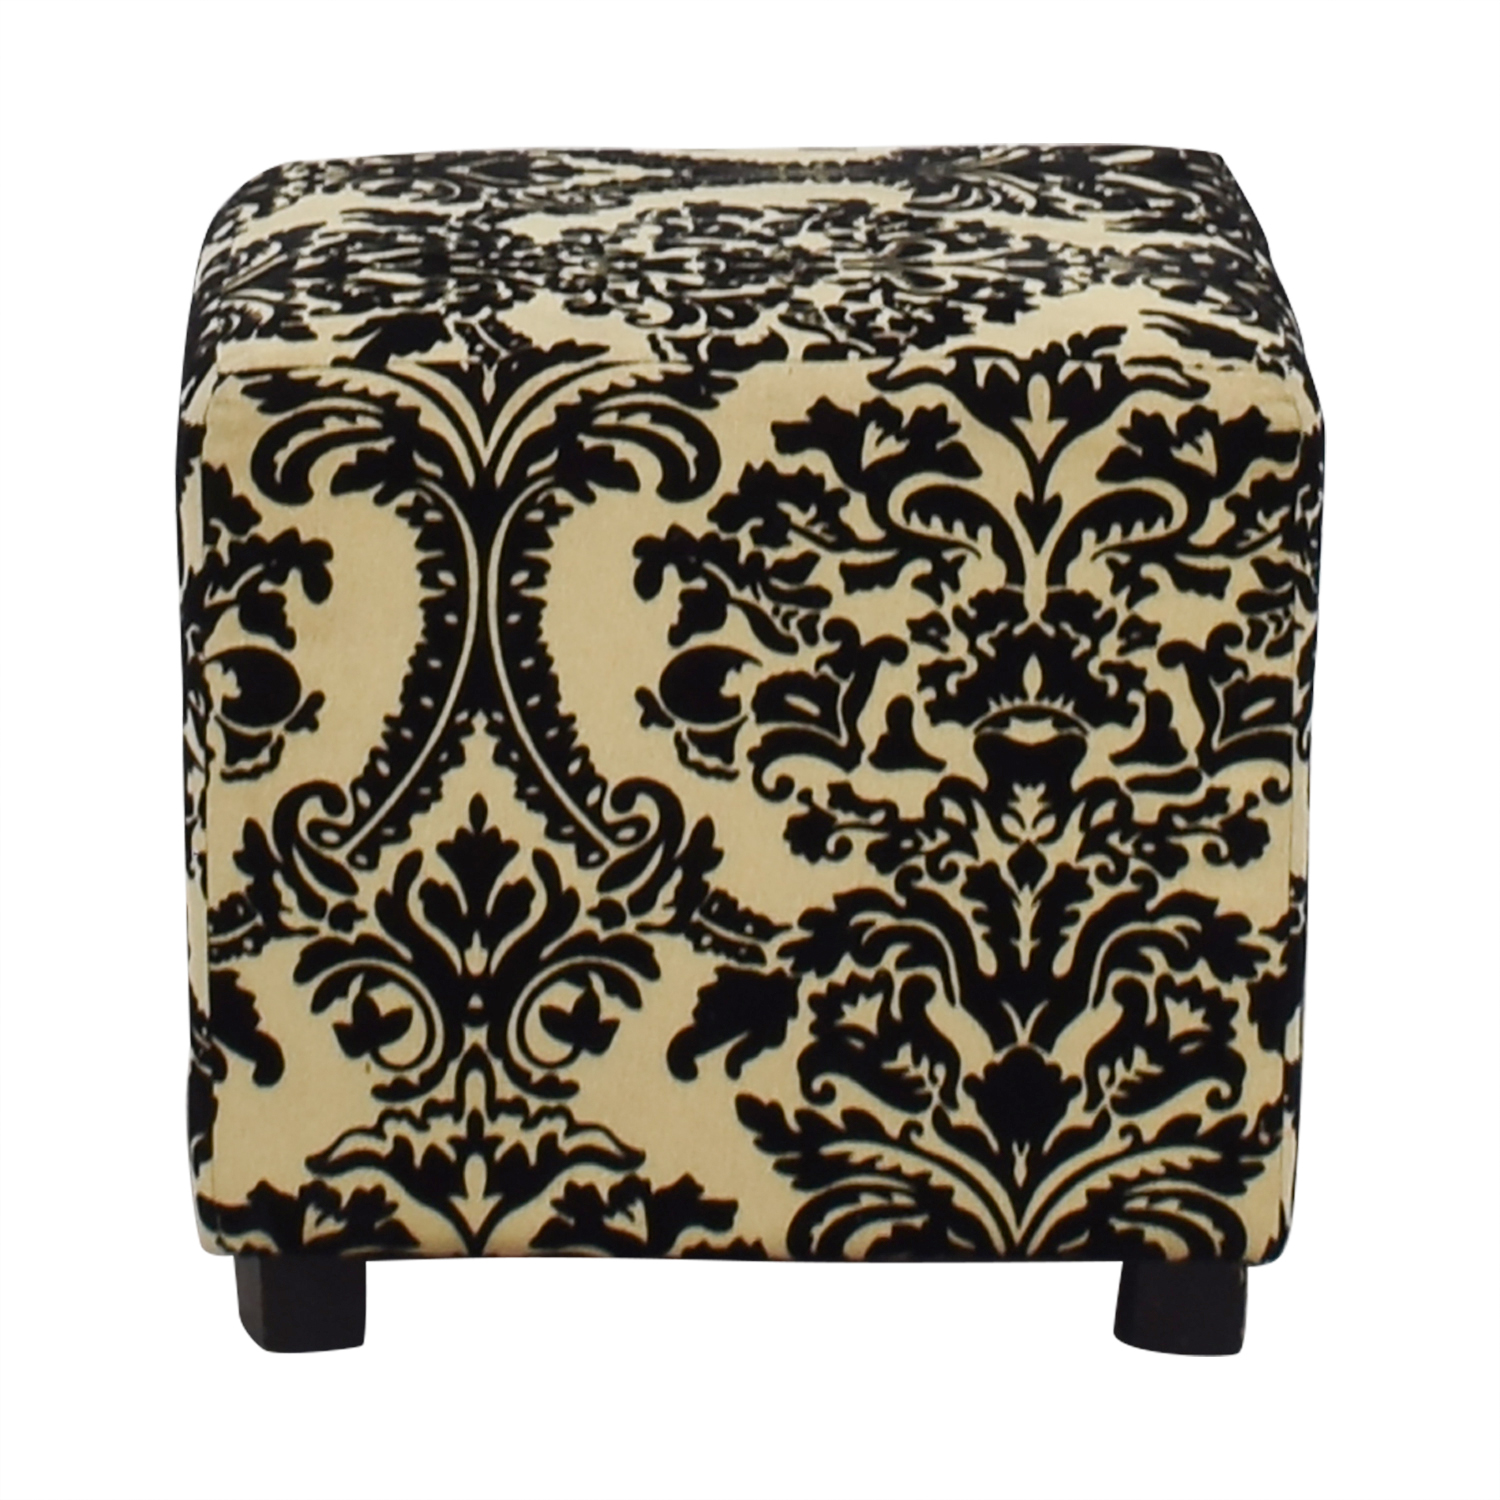 Bed Bath & Beyond Bed Bath & Beyond Black & White Ottoman for sale